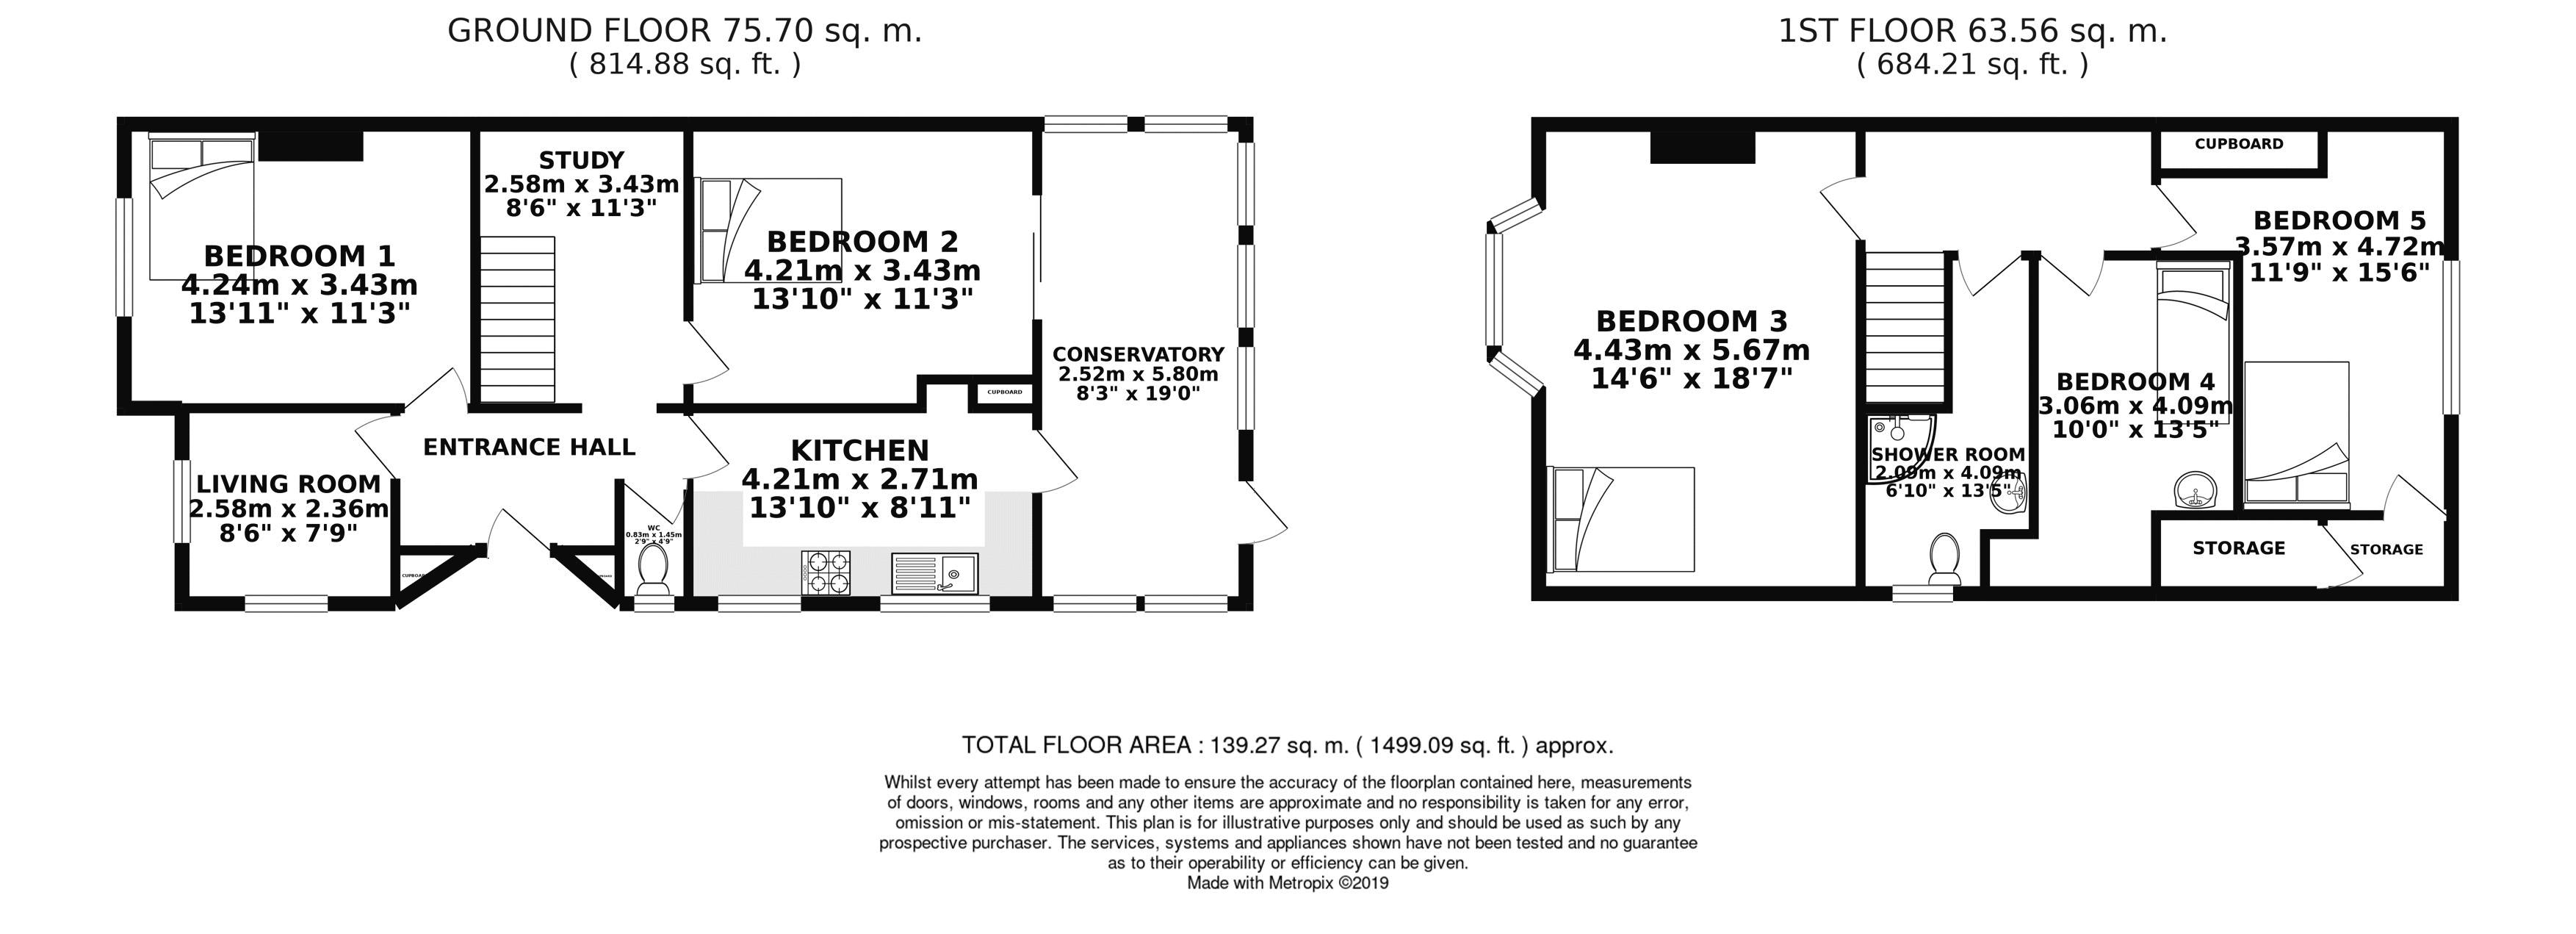 Floor plans for Coldean Lane, Brighton property for sale in Coldean, Brighton by Coapt